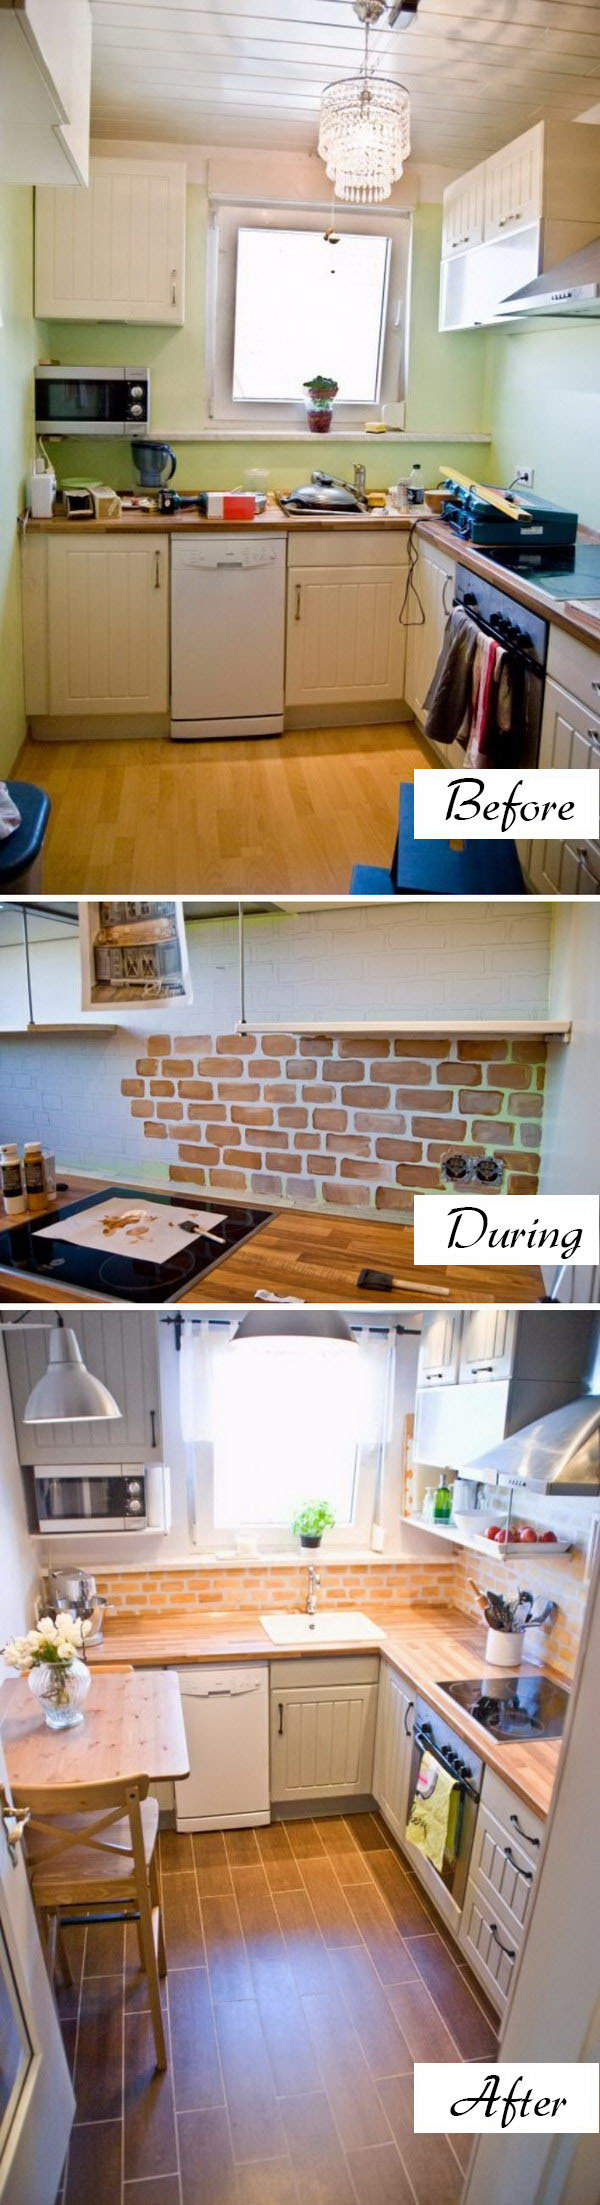 Change the Look and Save Money with Faux Painted Brick Backsplash.